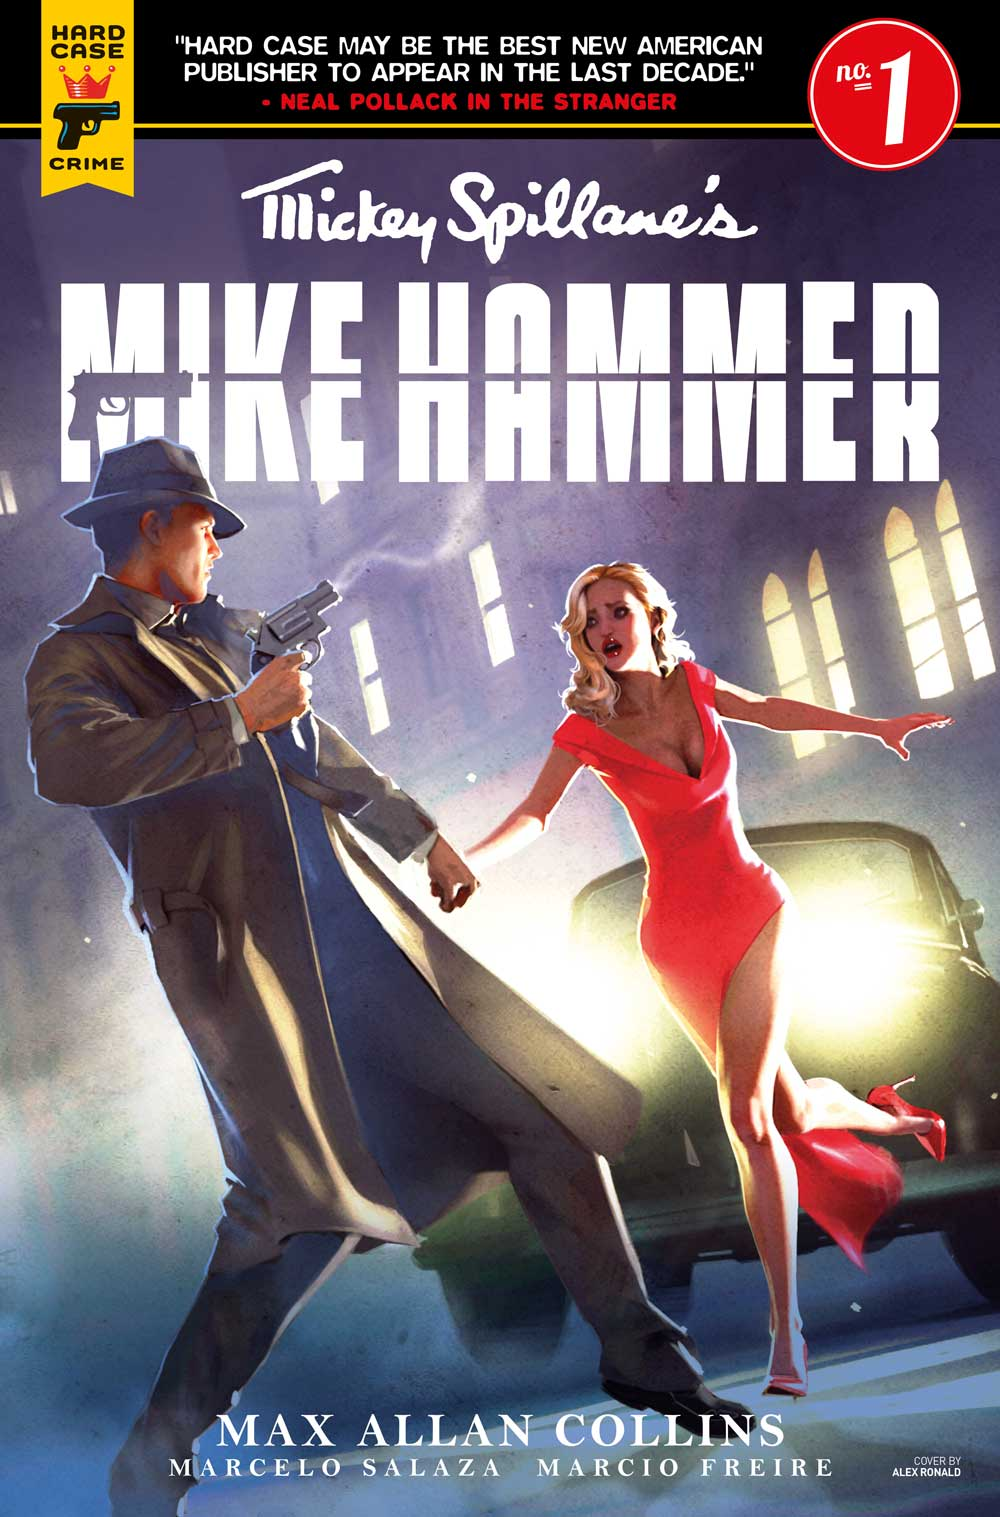 MikeHammer_CoverB